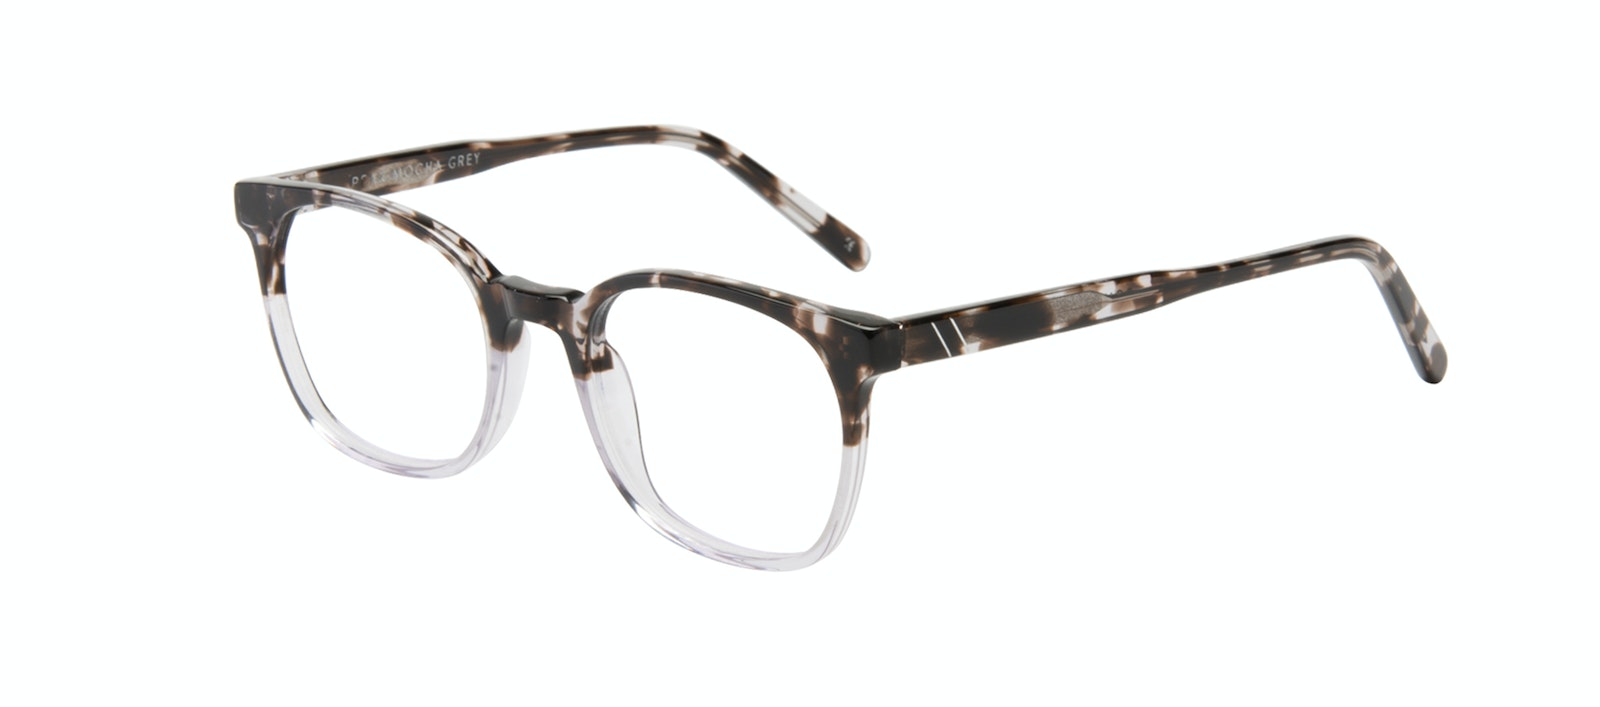 Affordable Fashion Glasses Rectangle Square Eyeglasses Men Peak Mocha Grey Tilt